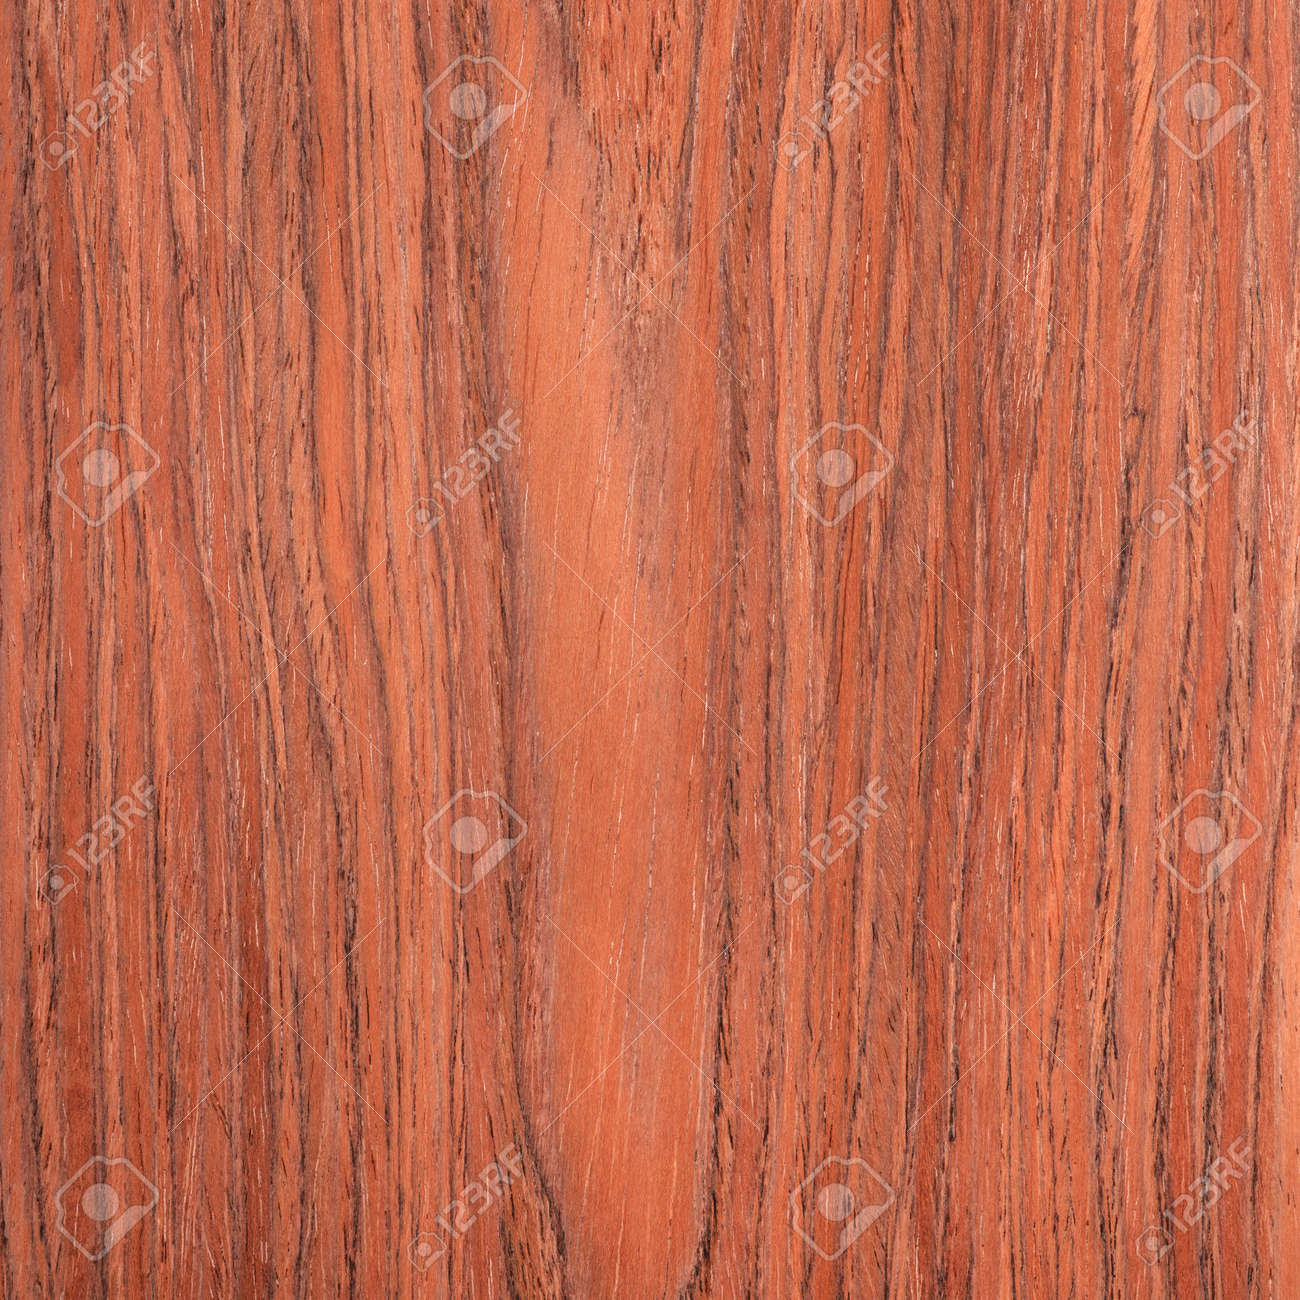 cherry wood flooring texture. Cherry Wood Texture, Tree Background Stock Photo - 24031068 Flooring Texture